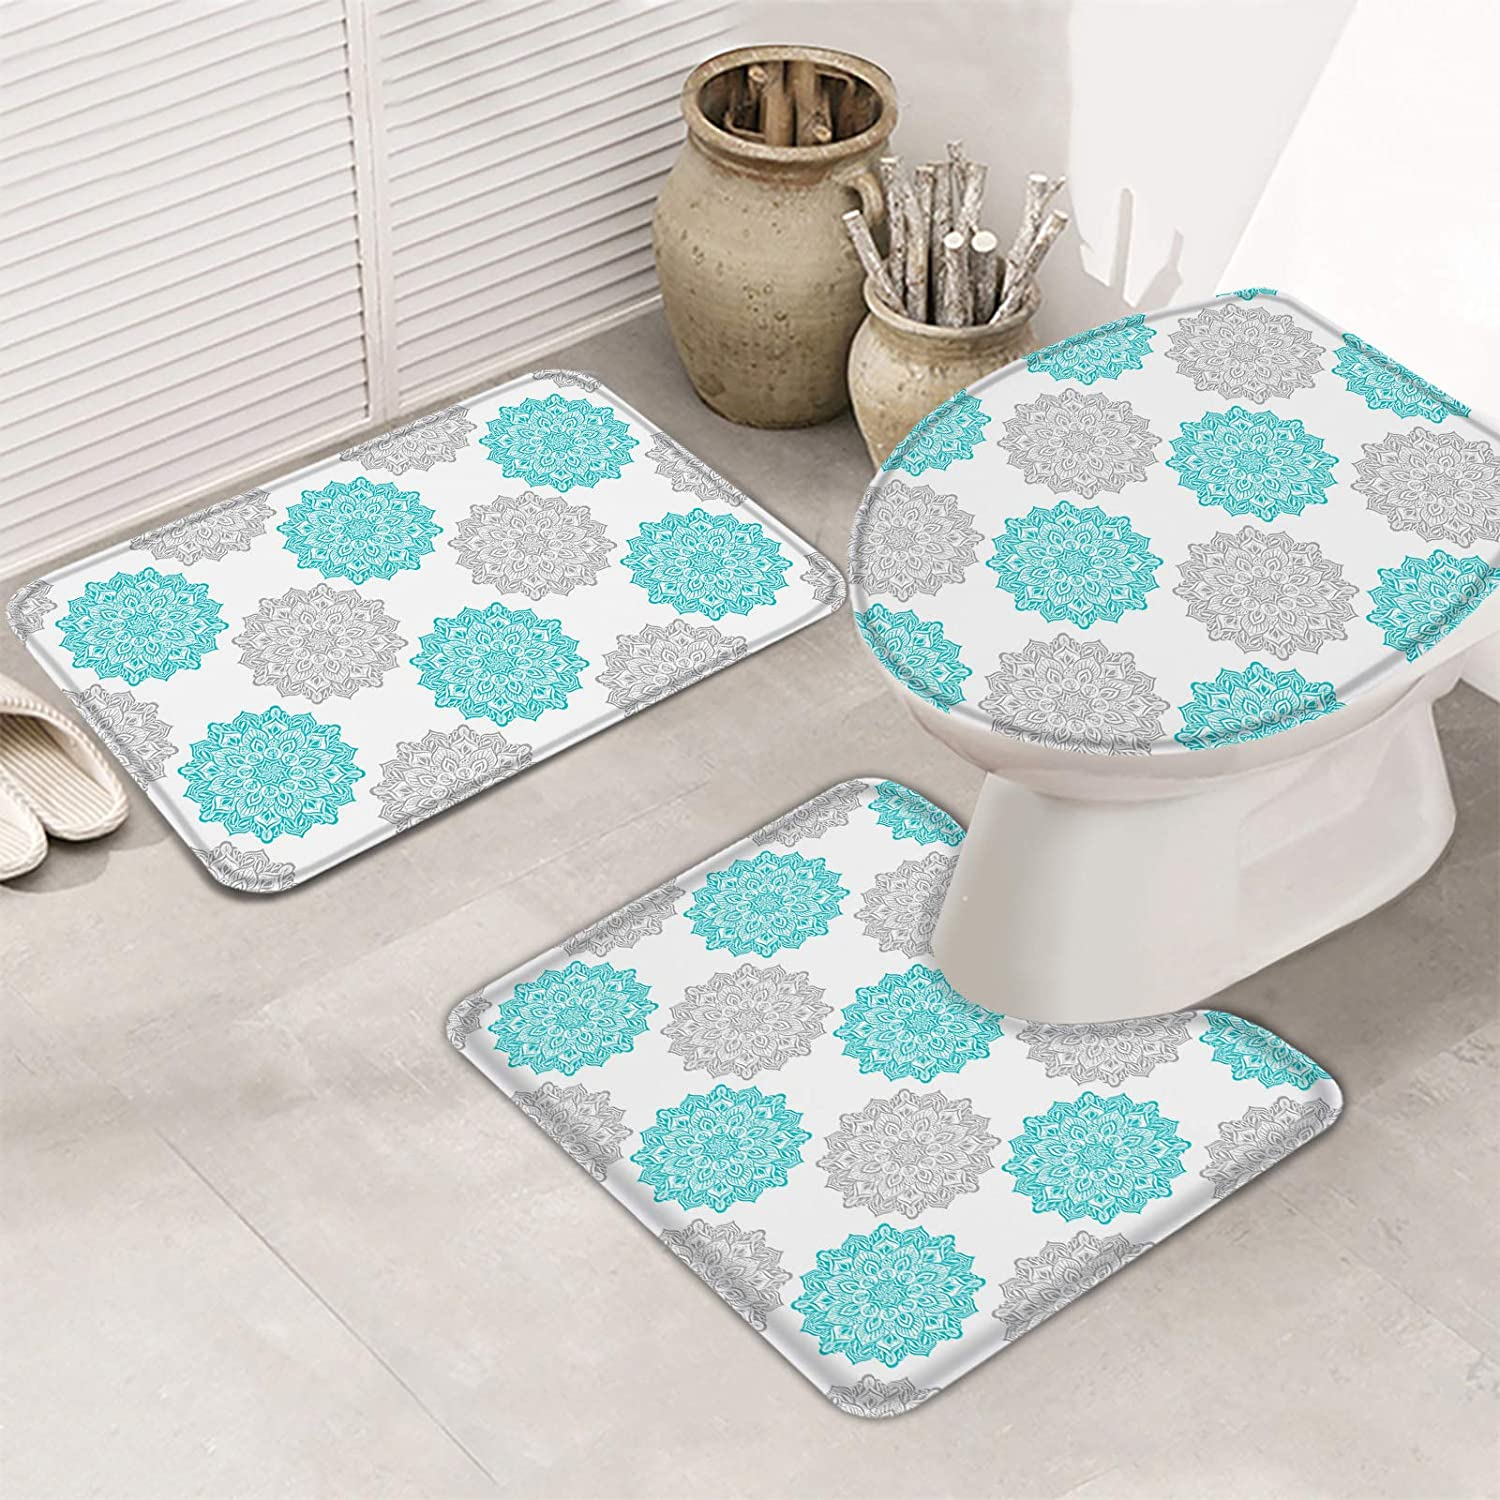 3 Pieces Bath Rug Direct store Set Toilet Cover Seat half Teal Bohemia Green Gray